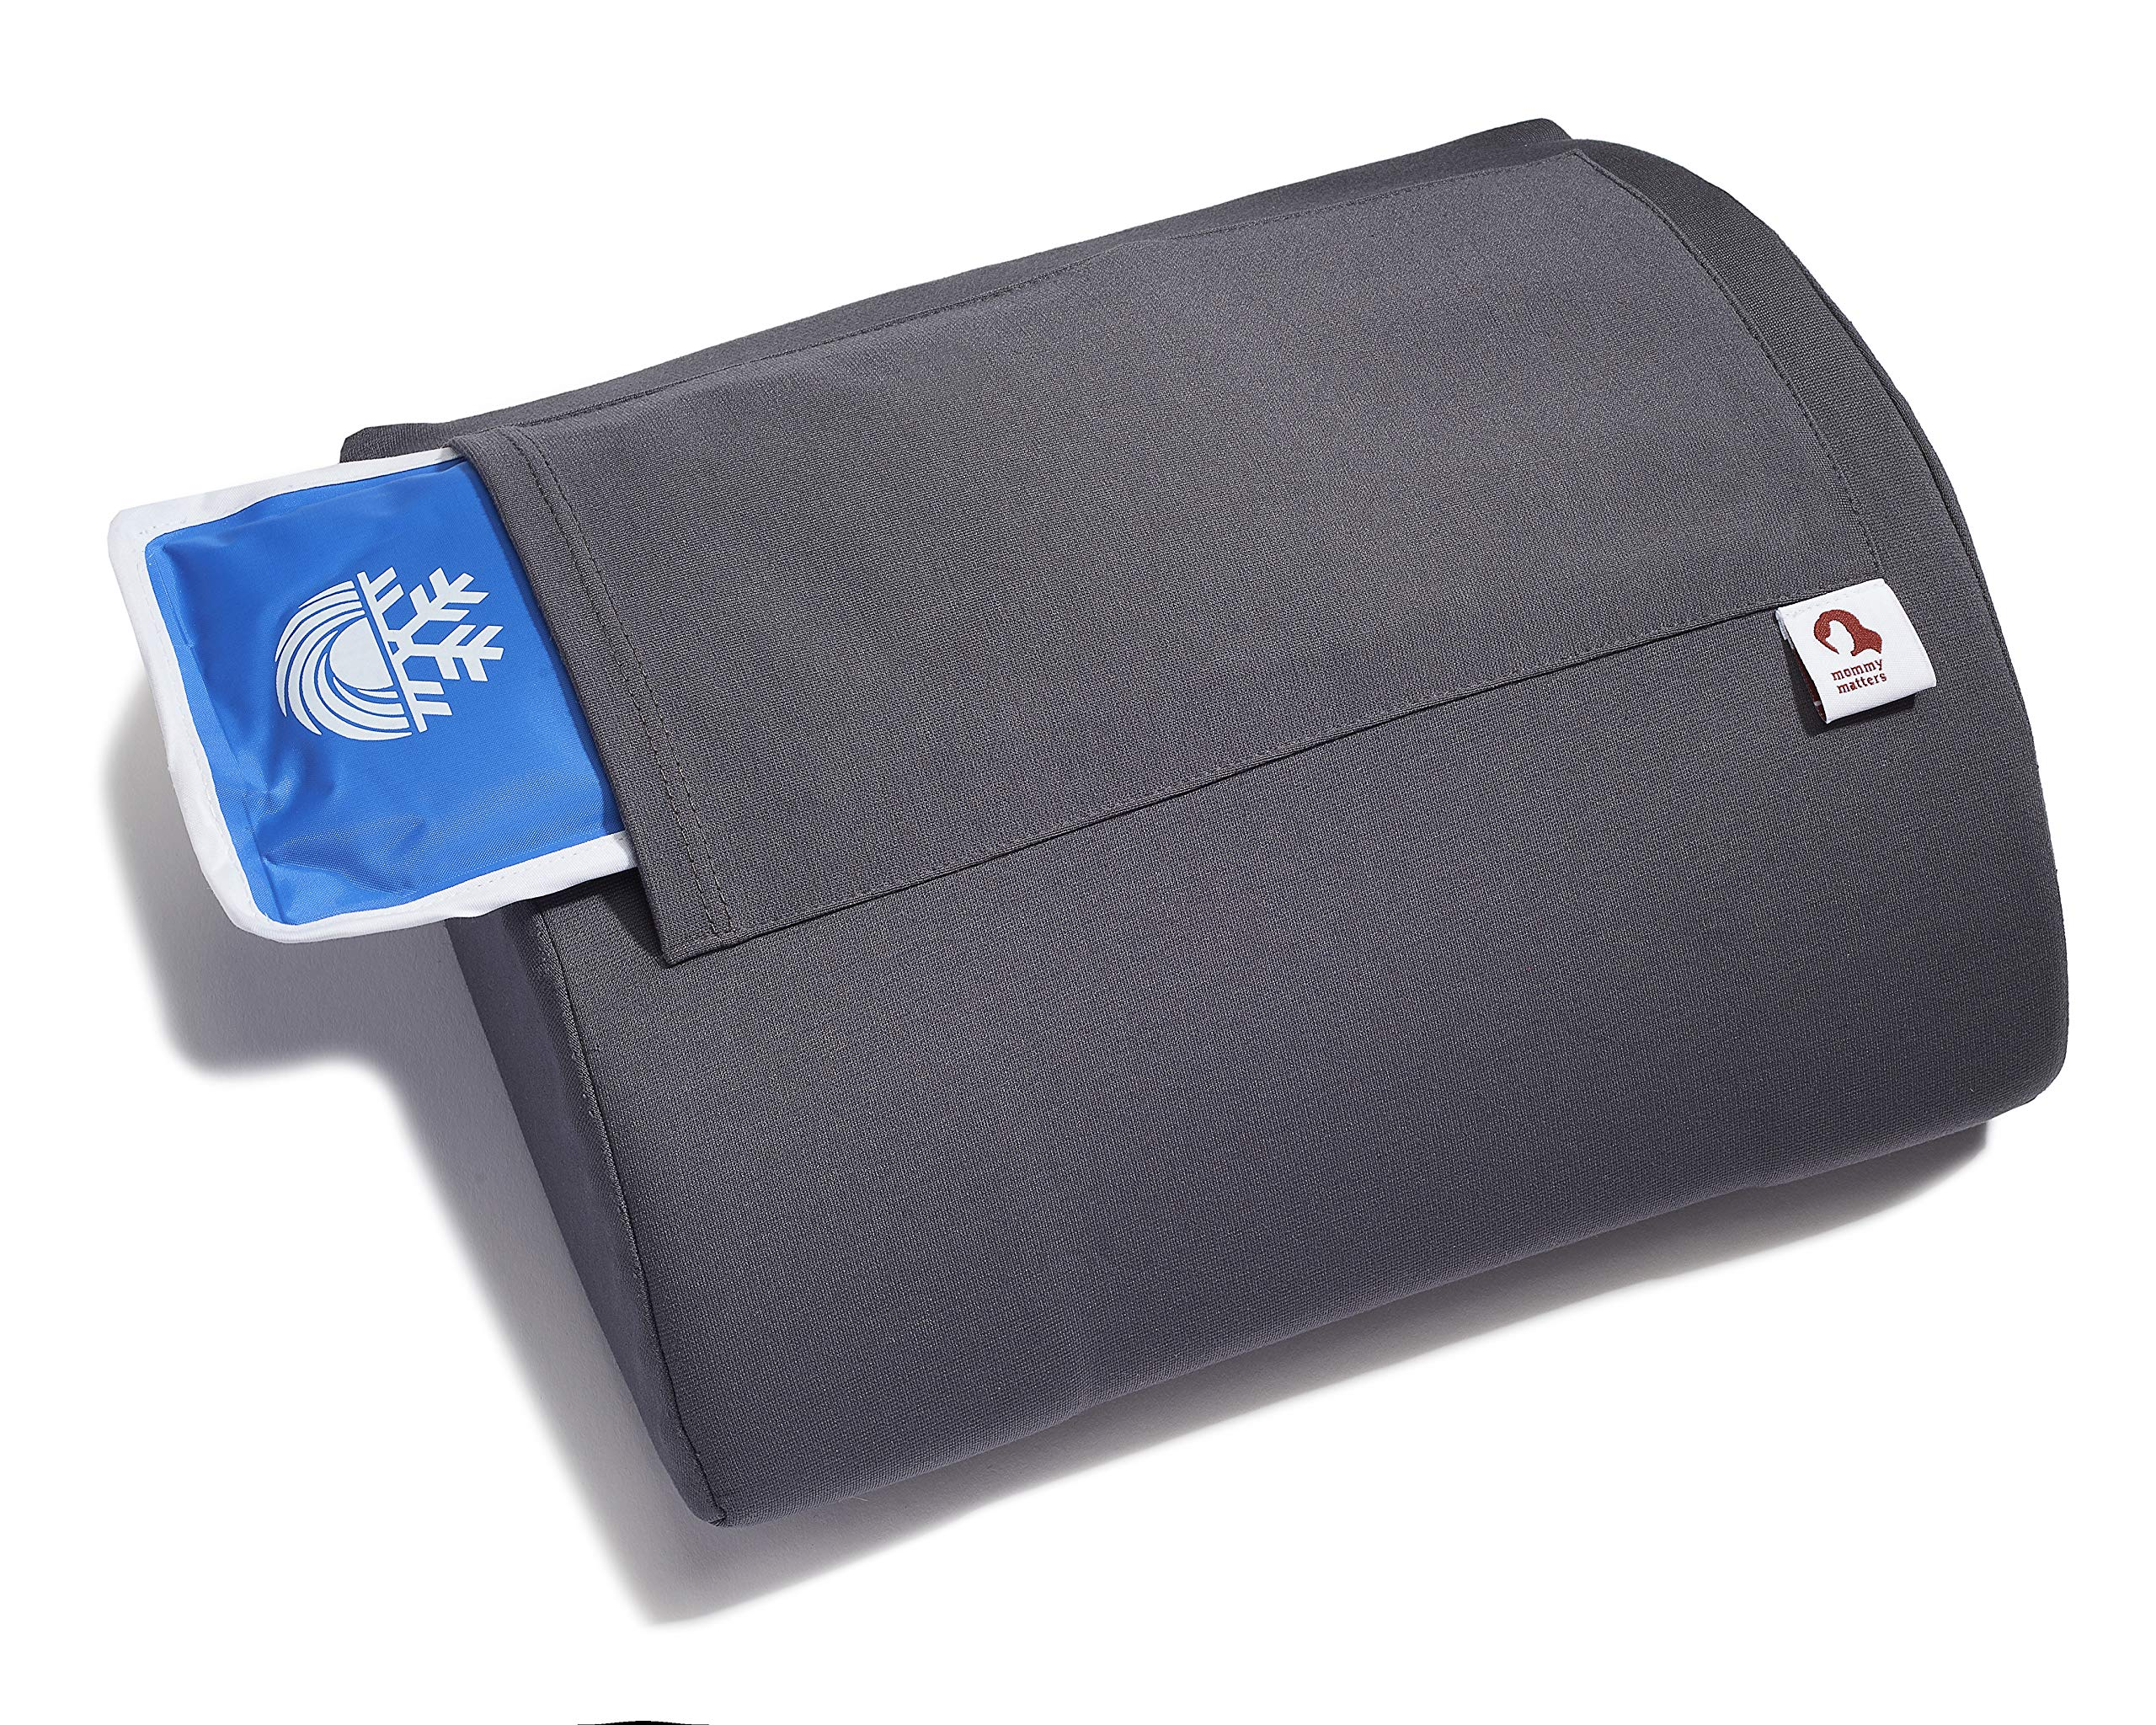 Mommy Matters Portable Pregnancy/Maternity Pillow - Foam Cushion Providing Pregnant Women with Lower Back Pain Relief and Lumbar Support, with Hot/Cold Gel Pack and Removable Cover (Charcoal Gray)